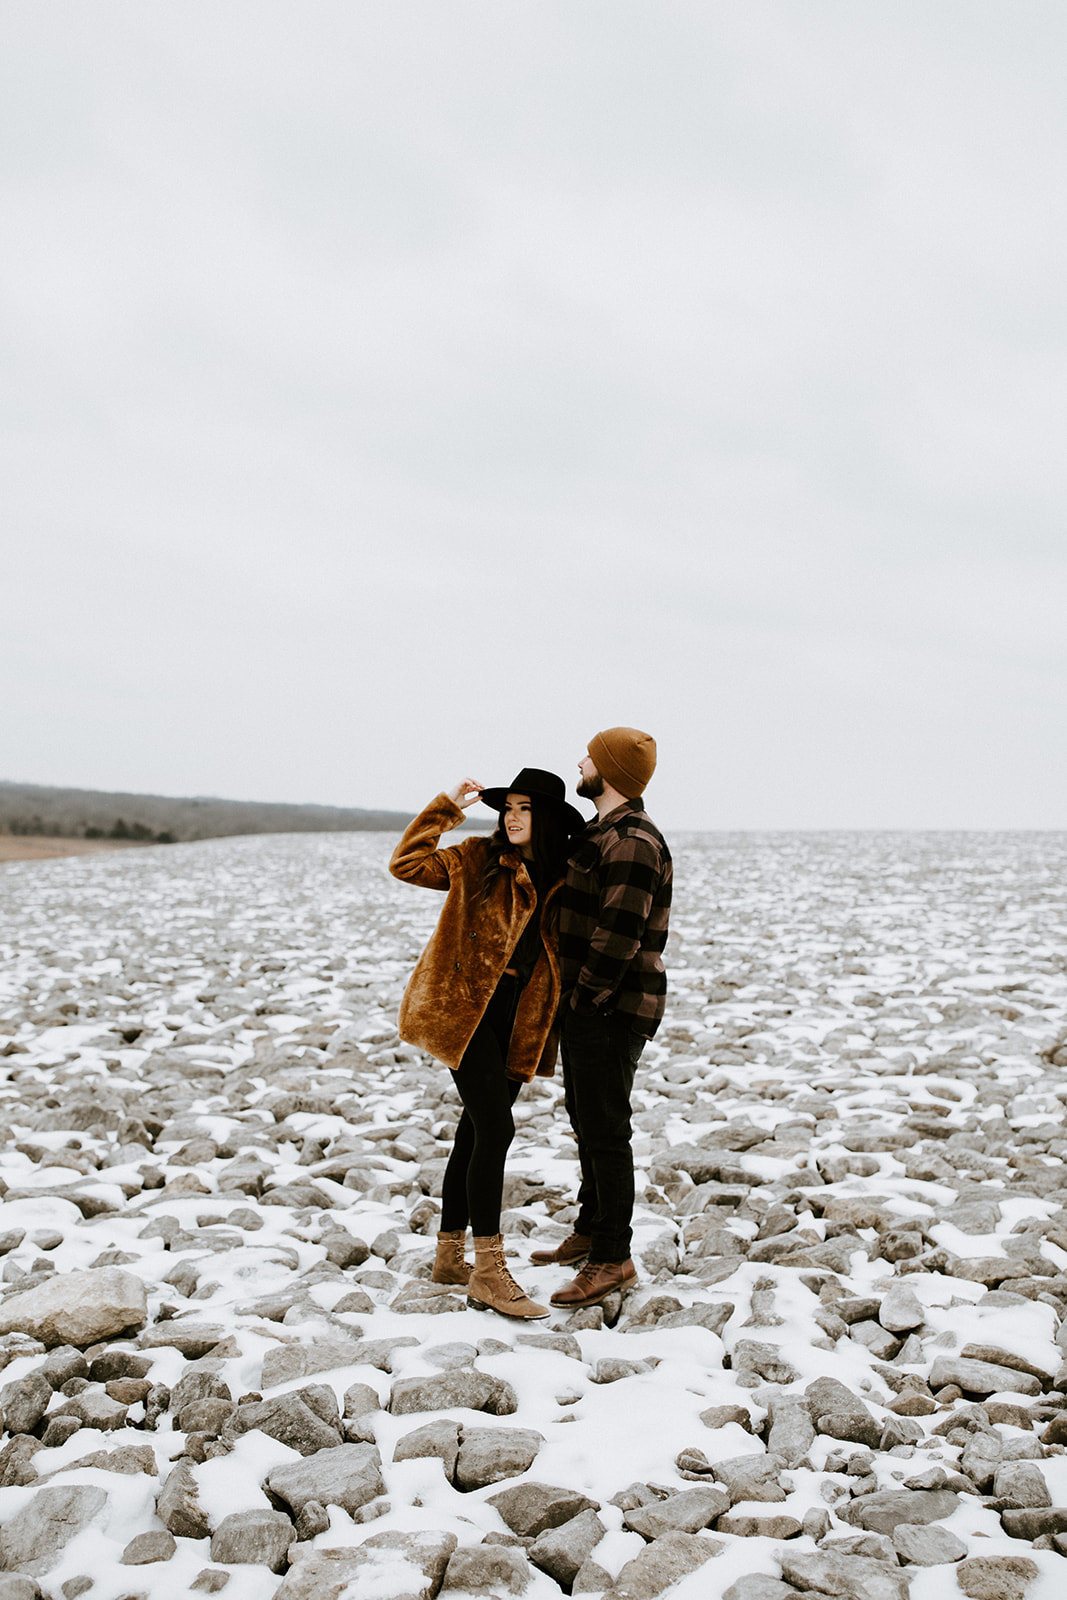 A couple in a snowy rock field look away.